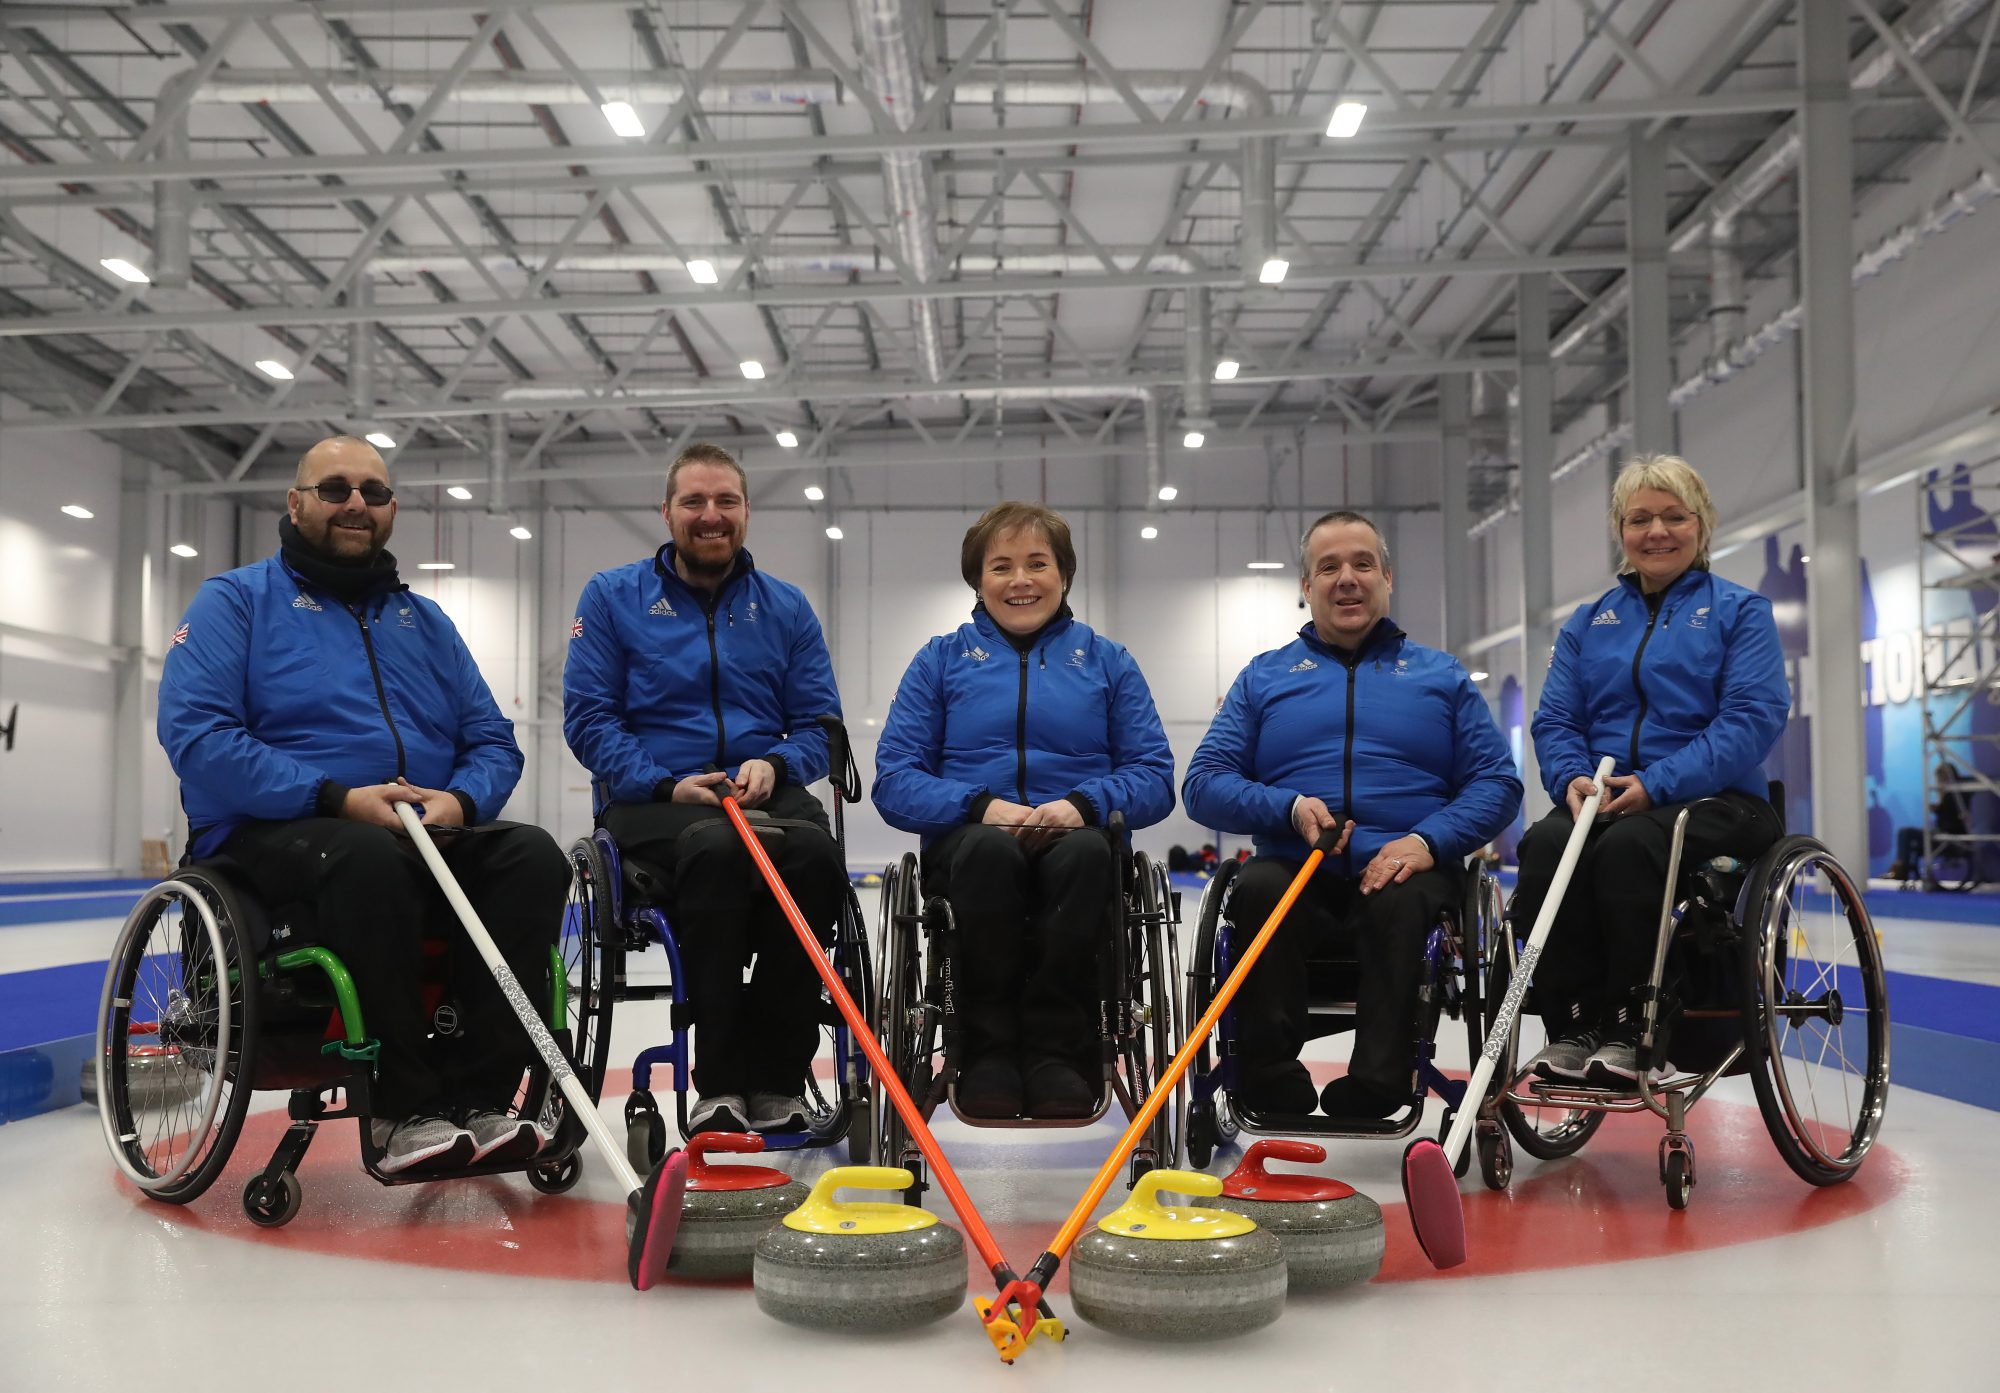 Image from the paralympics